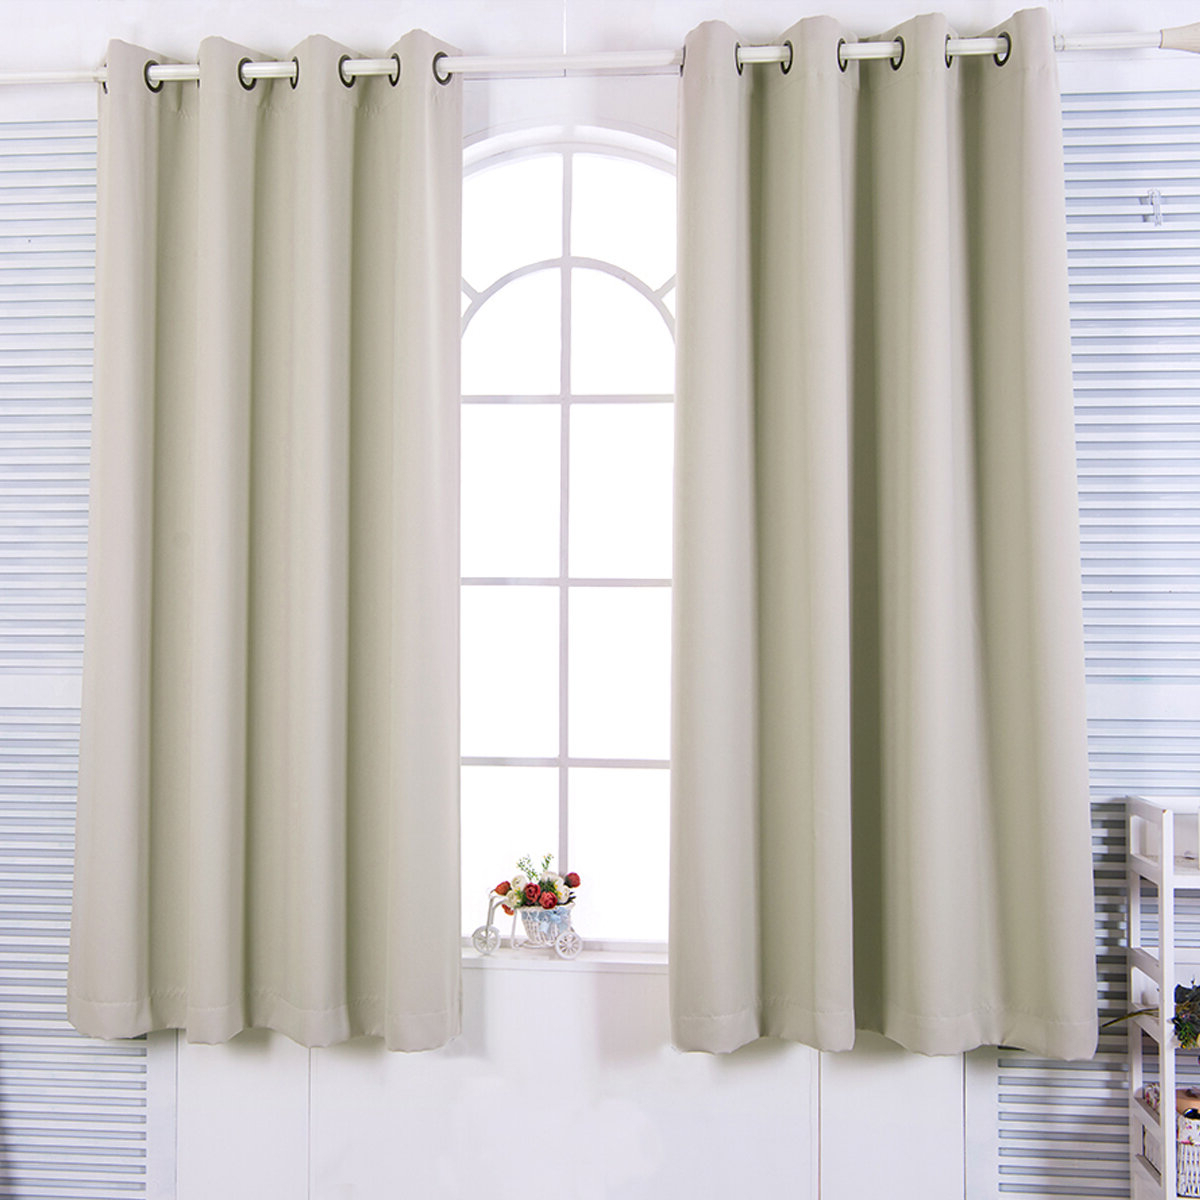 Most Recently Released Solid Insulated Thermal Blackout Curtain Panel Pairs In August Grove Victor Solid Blackout Thermal Grommet Curtain (View 6 of 20)